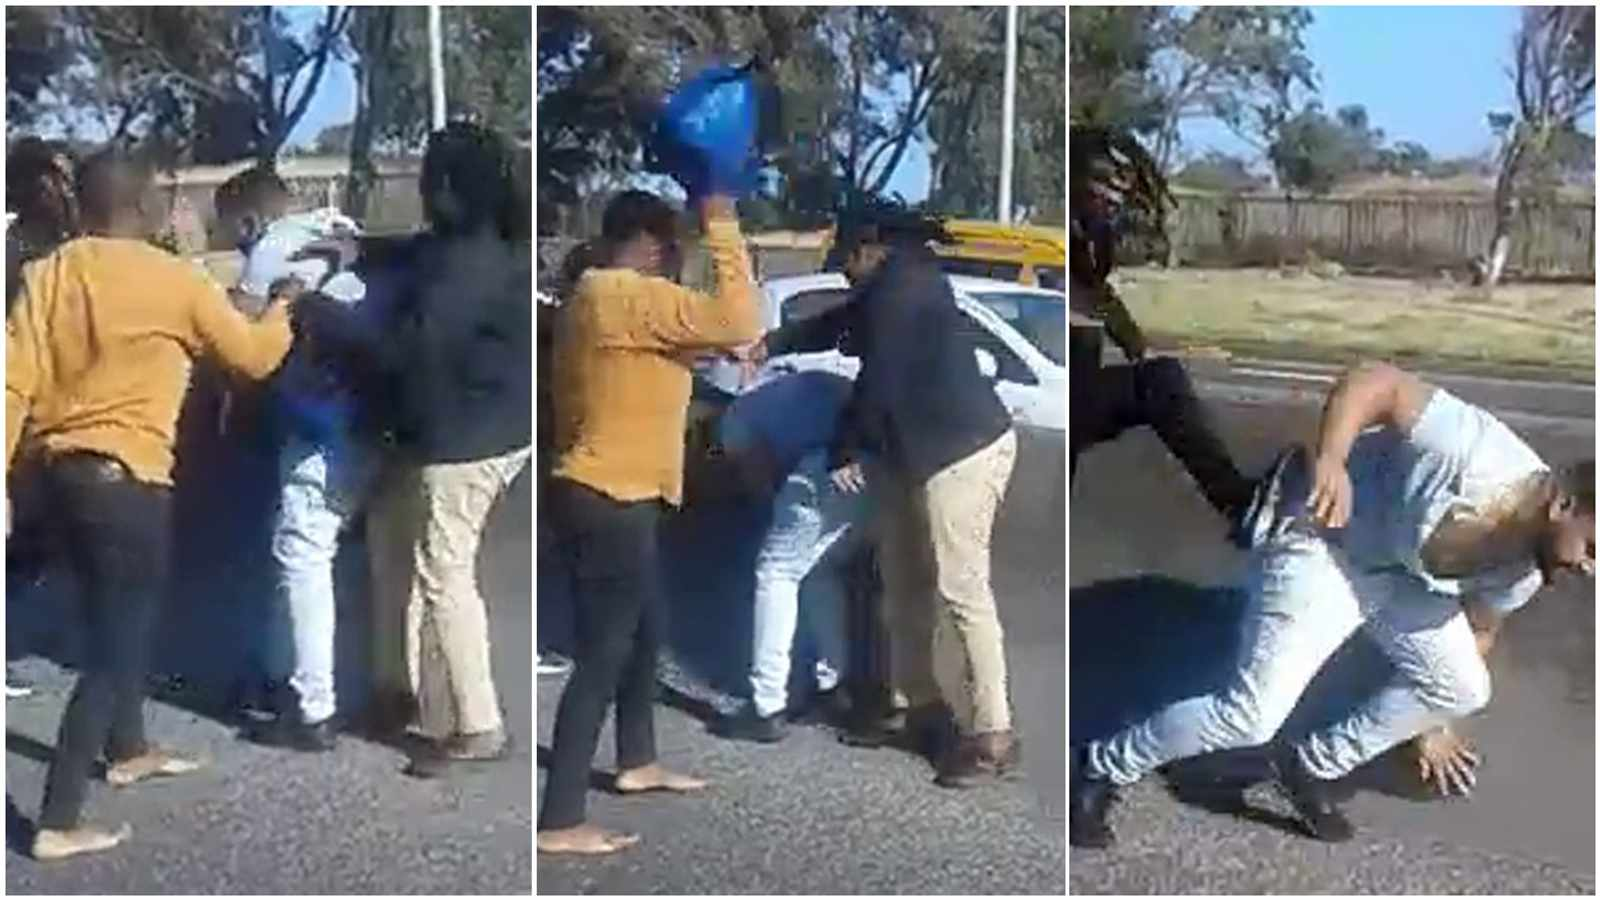 [WATCH] Highway hooligans: Ou attacked by taxi drivers